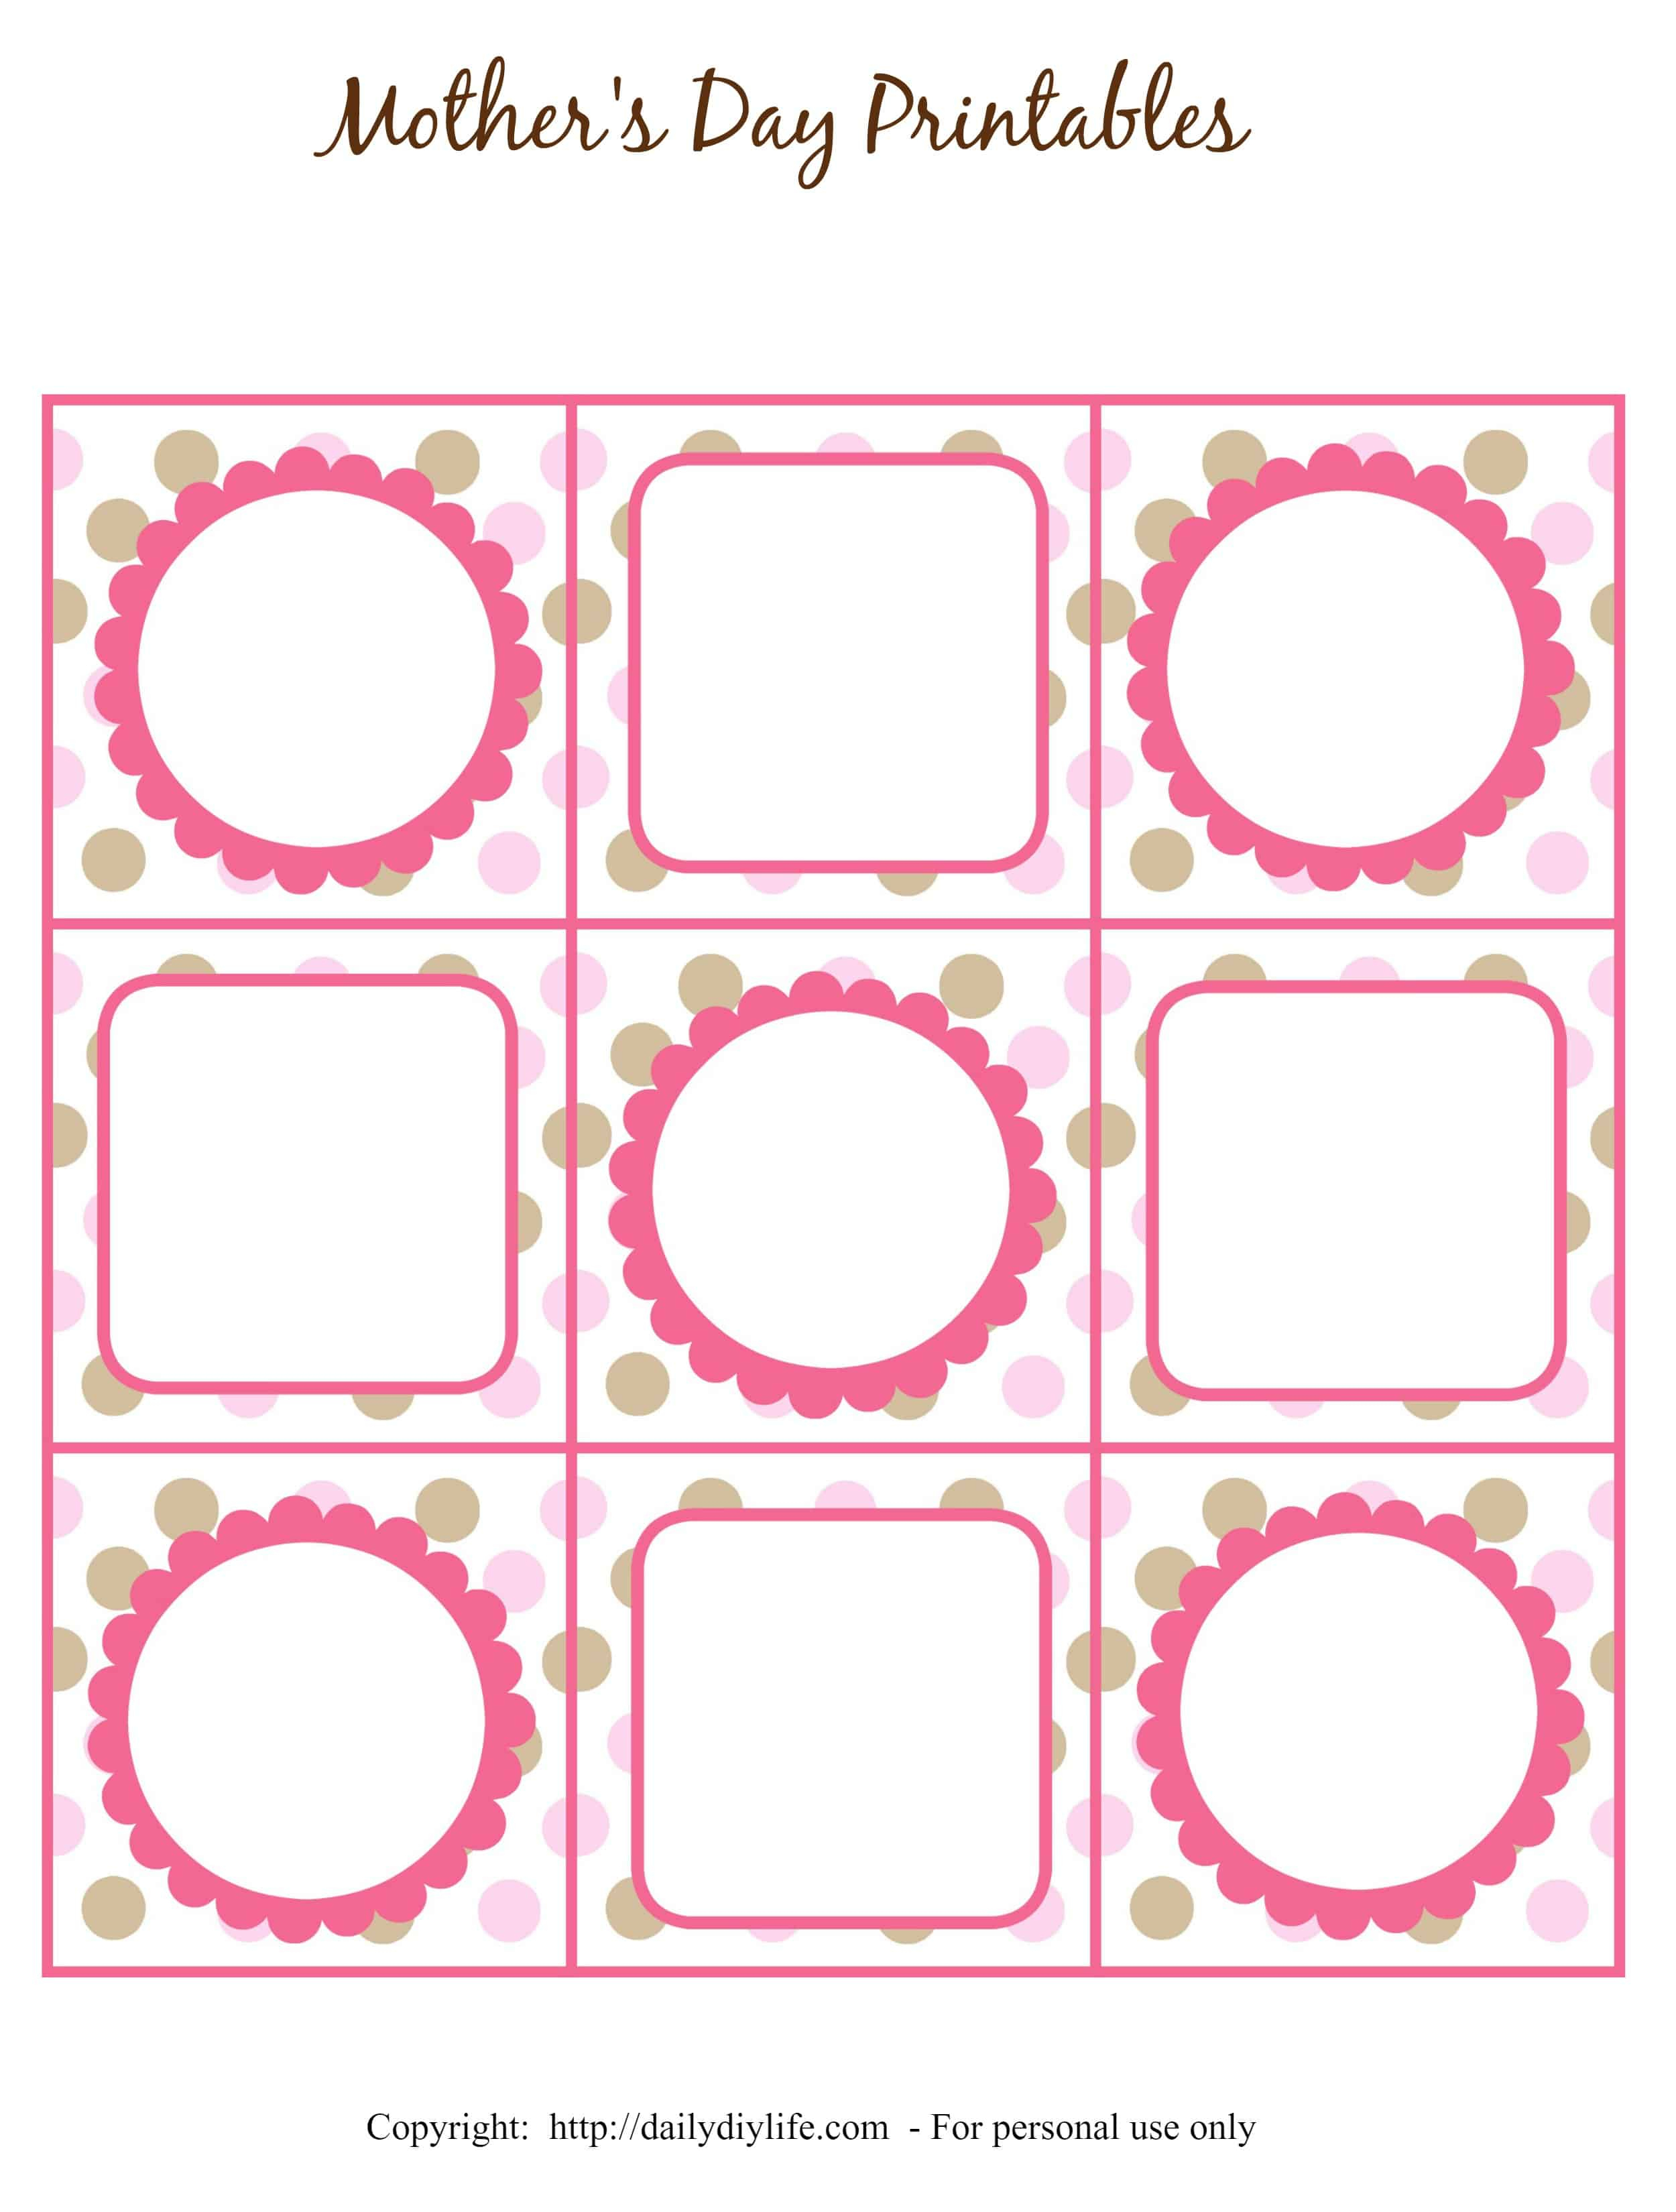 Mother's Day Free Printable Gift Tags Or Cupcake Toppers - Cupcake Topper Templates Free Printable